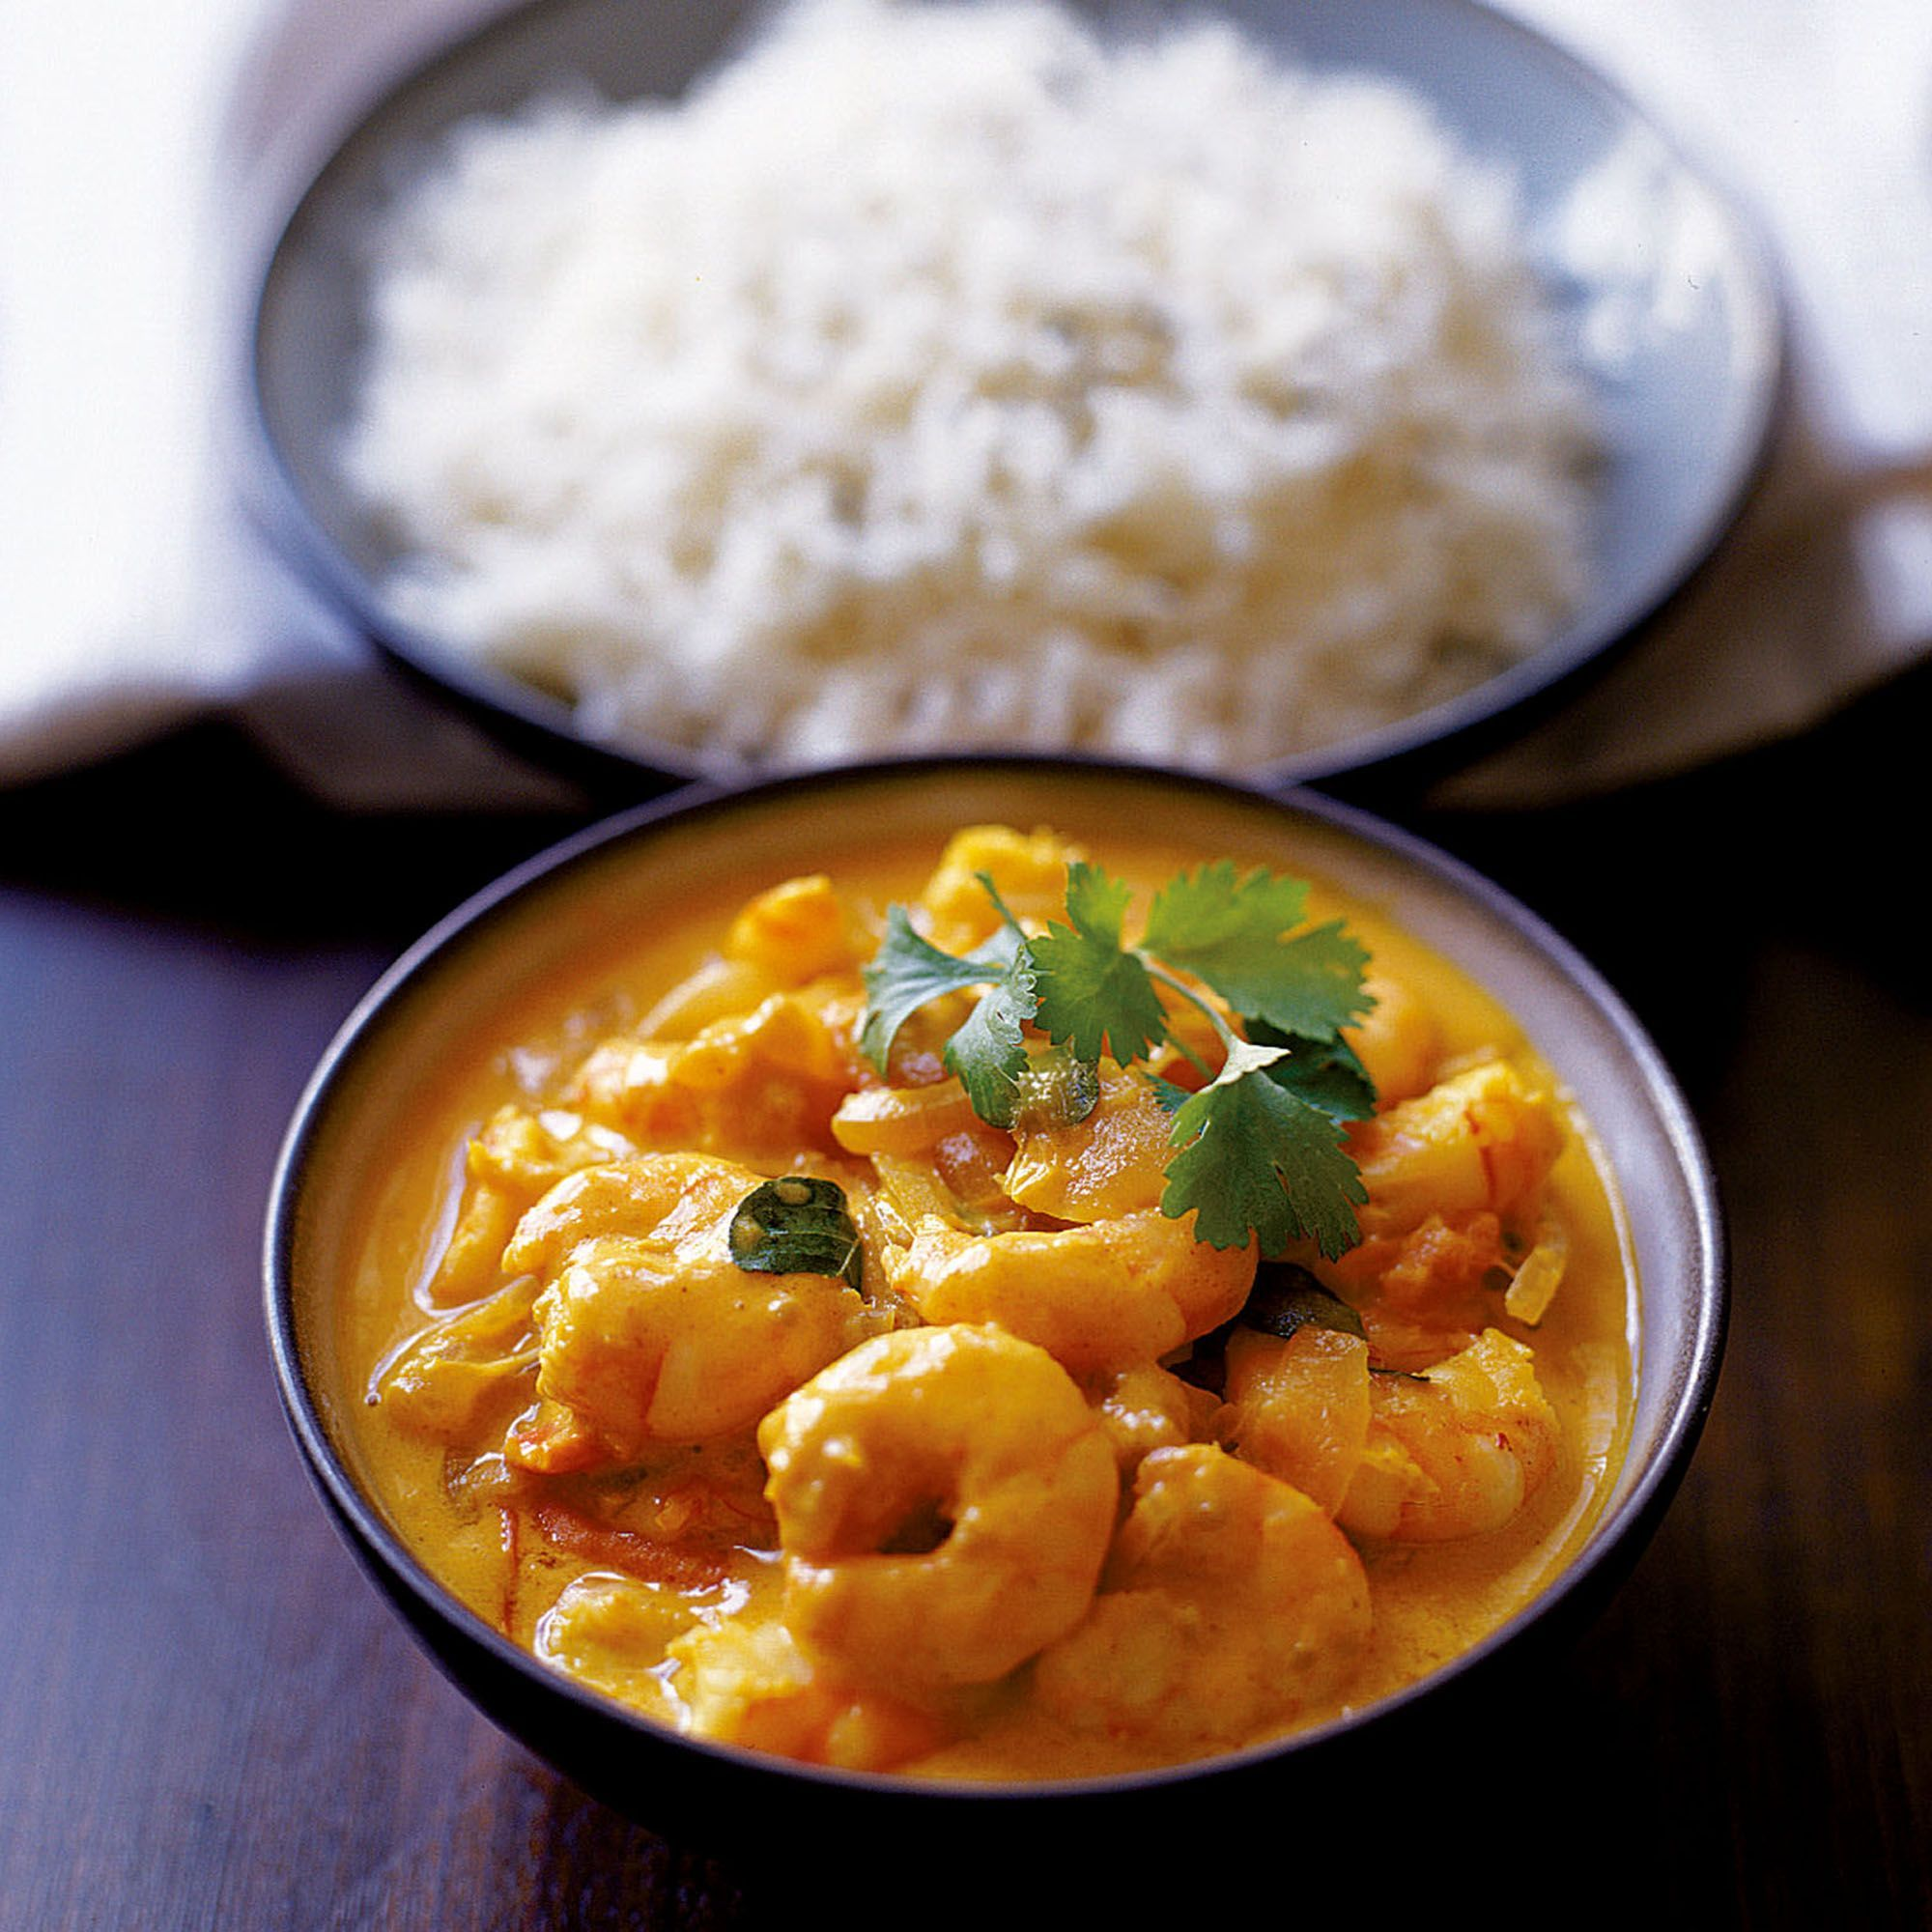 Prawn Curry An easy Indian curry recipe made with prawns. Alternatively use white fish or chicken in the curryAn easy Indian curry recipe made with prawns. Alternatively use white fish or chicken in the curry